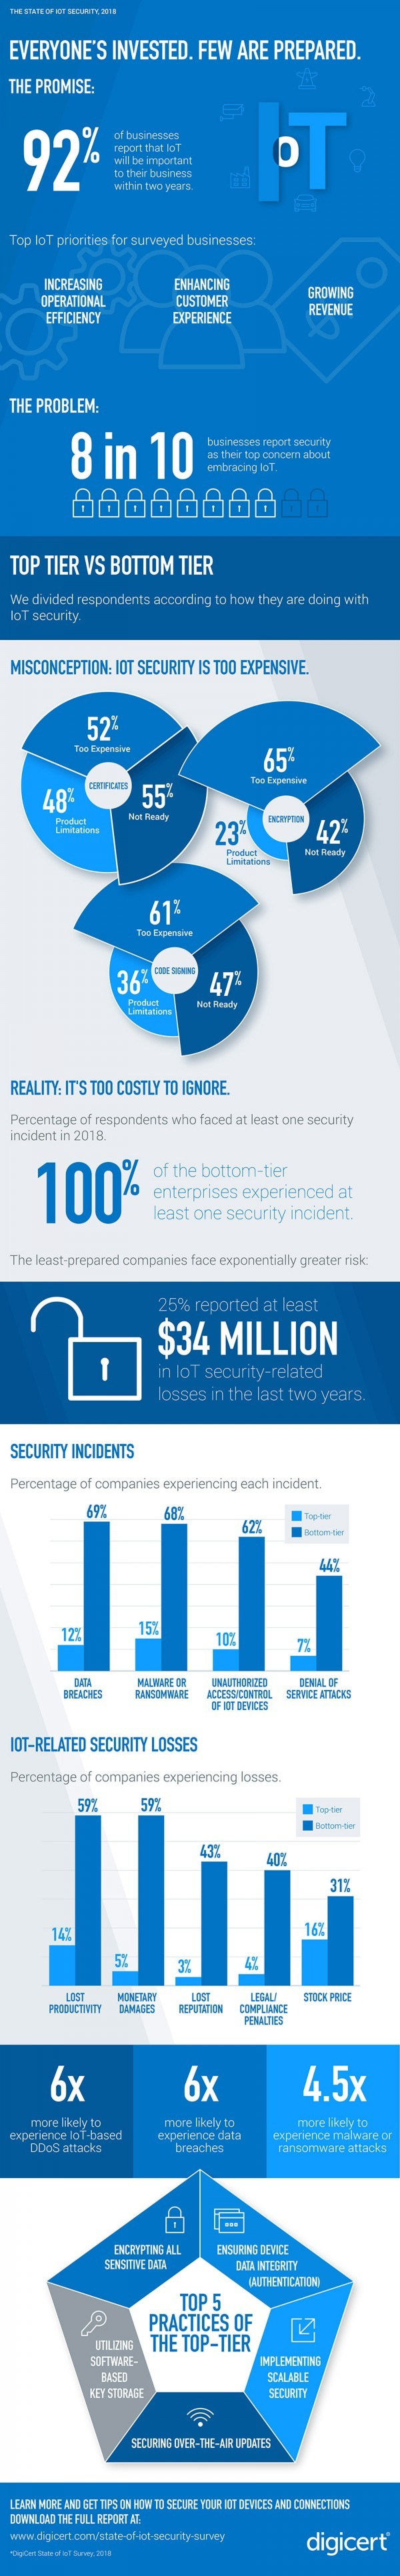 Infographic by DigiCert: IoT security